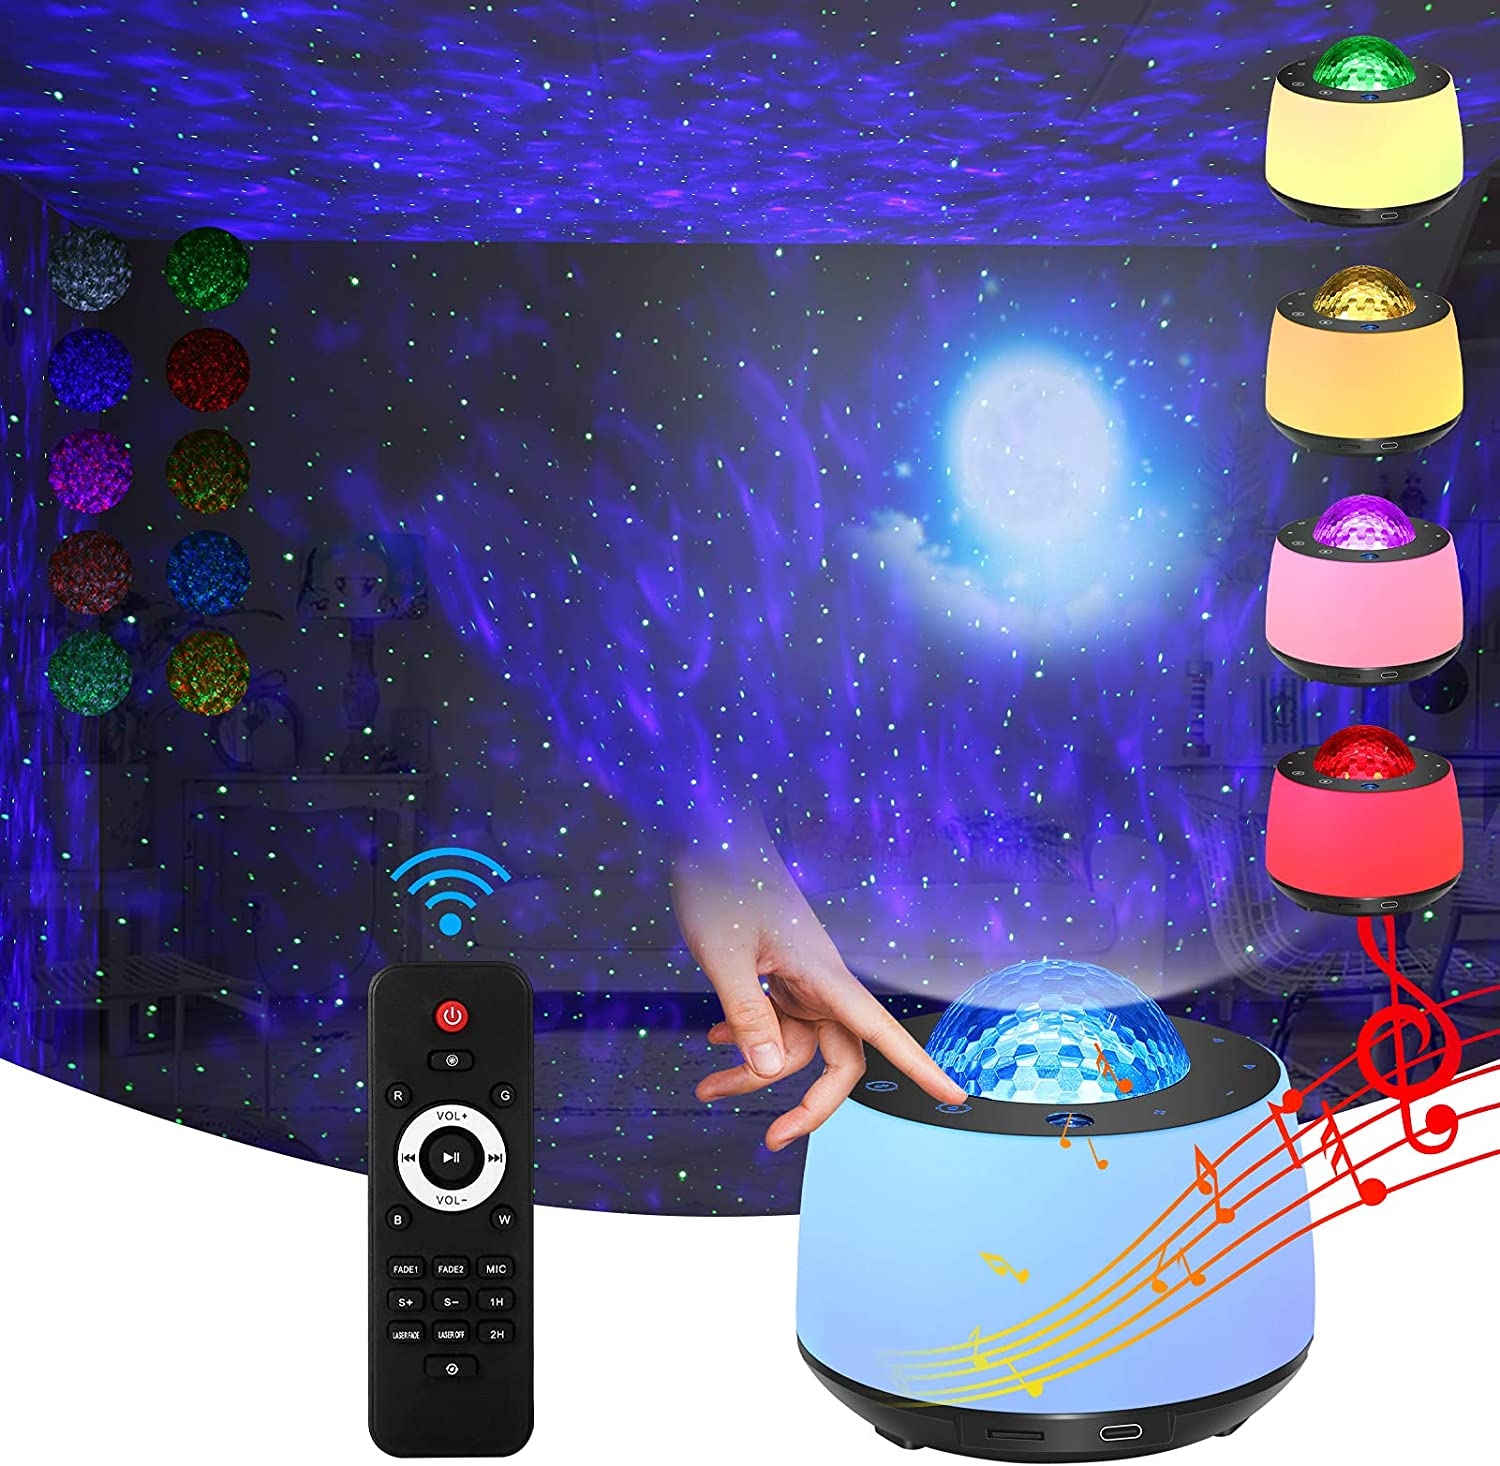 Star Projector Light with Night Max 90% OFF Moon Nebula OFFicial store Projrctor and